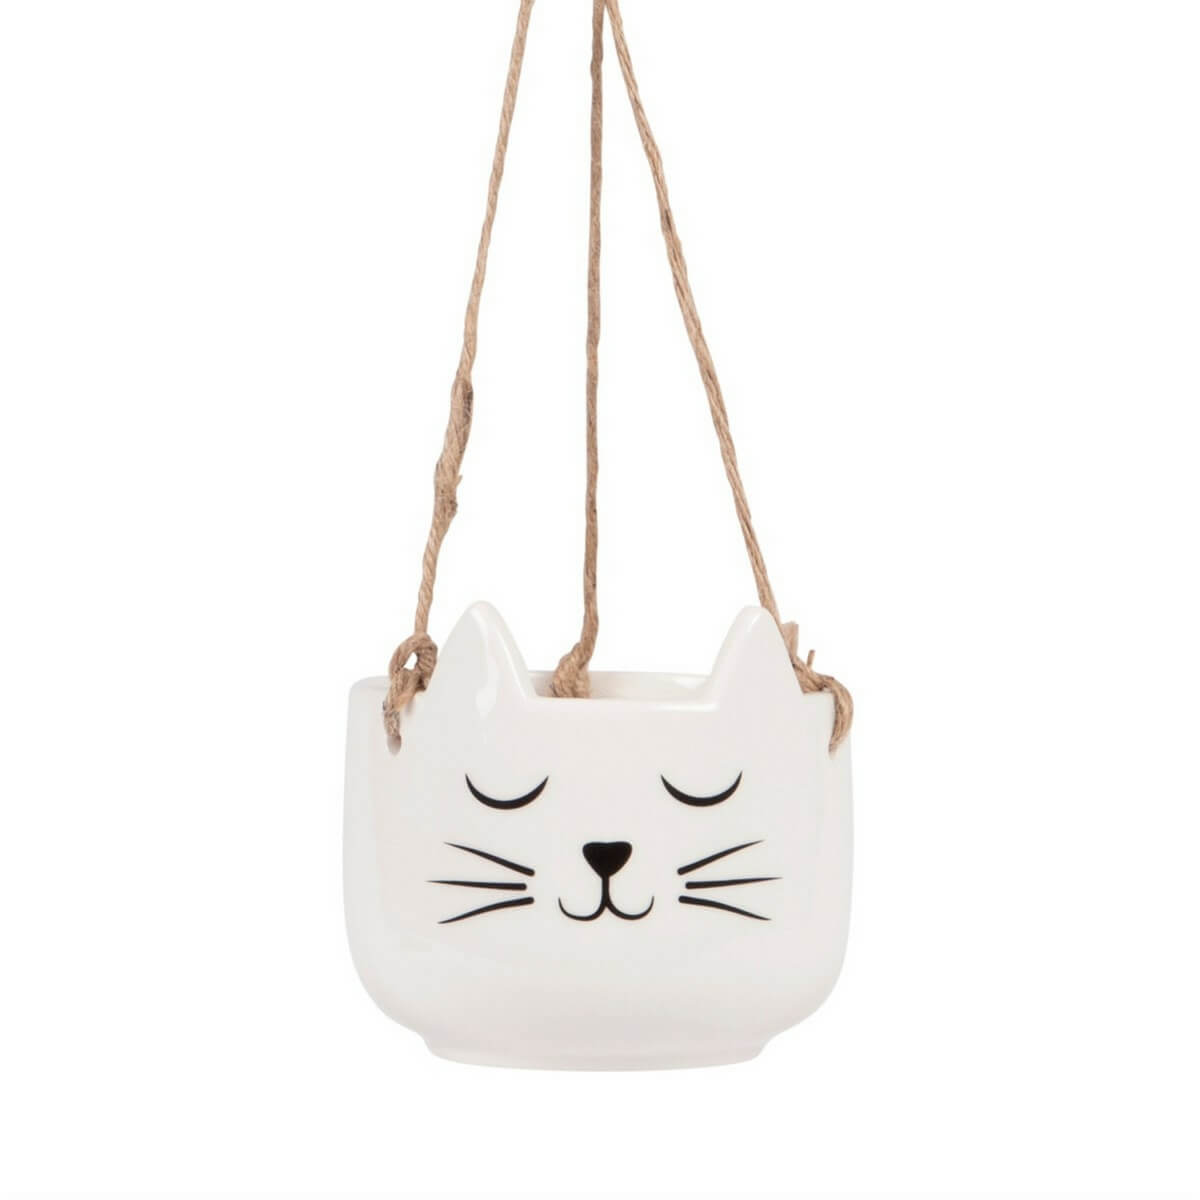 Hanging kitty cat planter